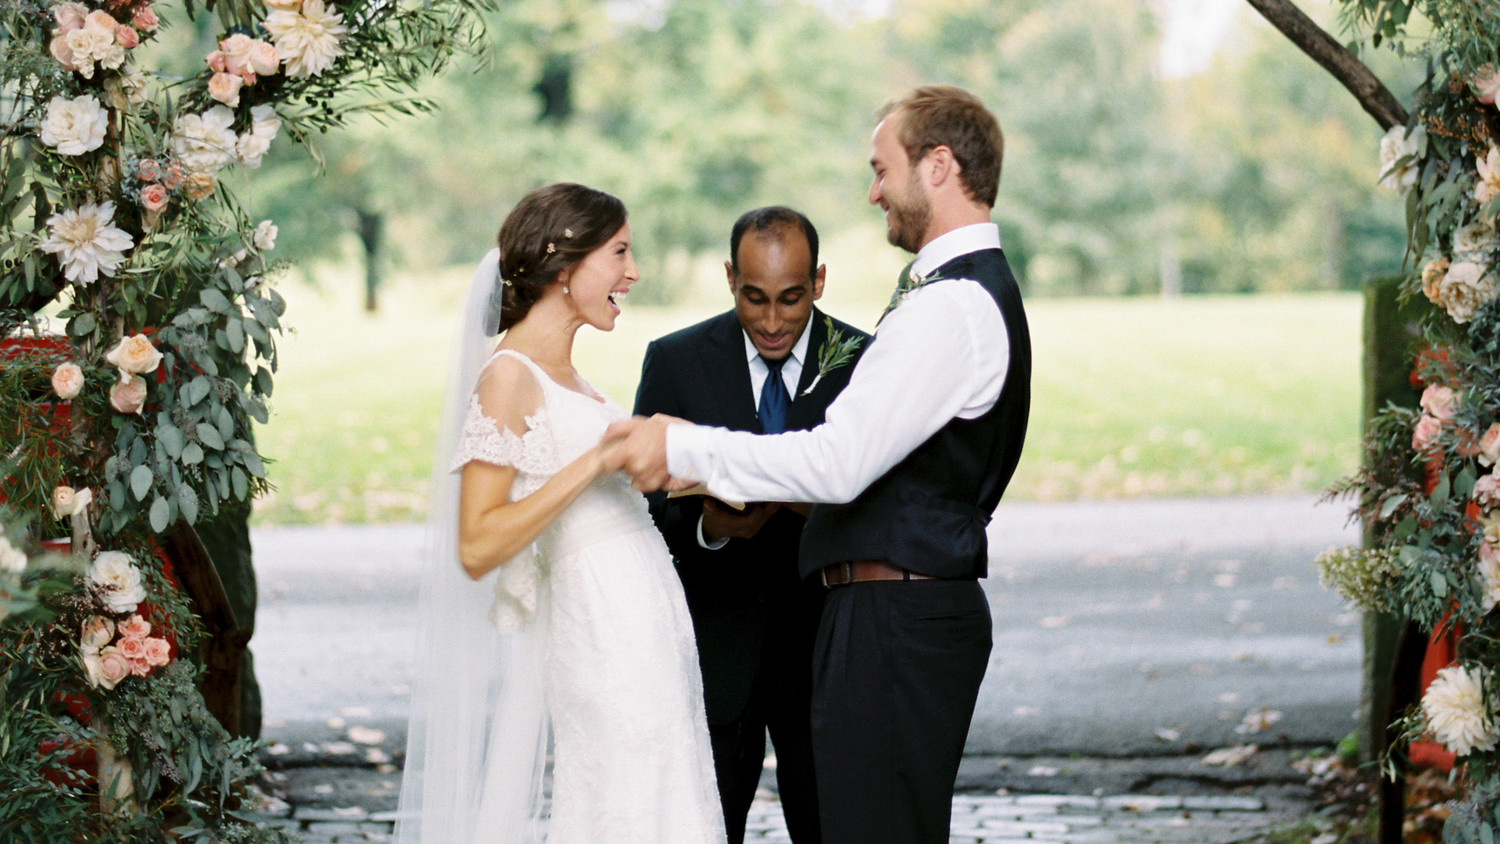 Everything You Need To Know About Asking A Friend Officiate Your Wedding